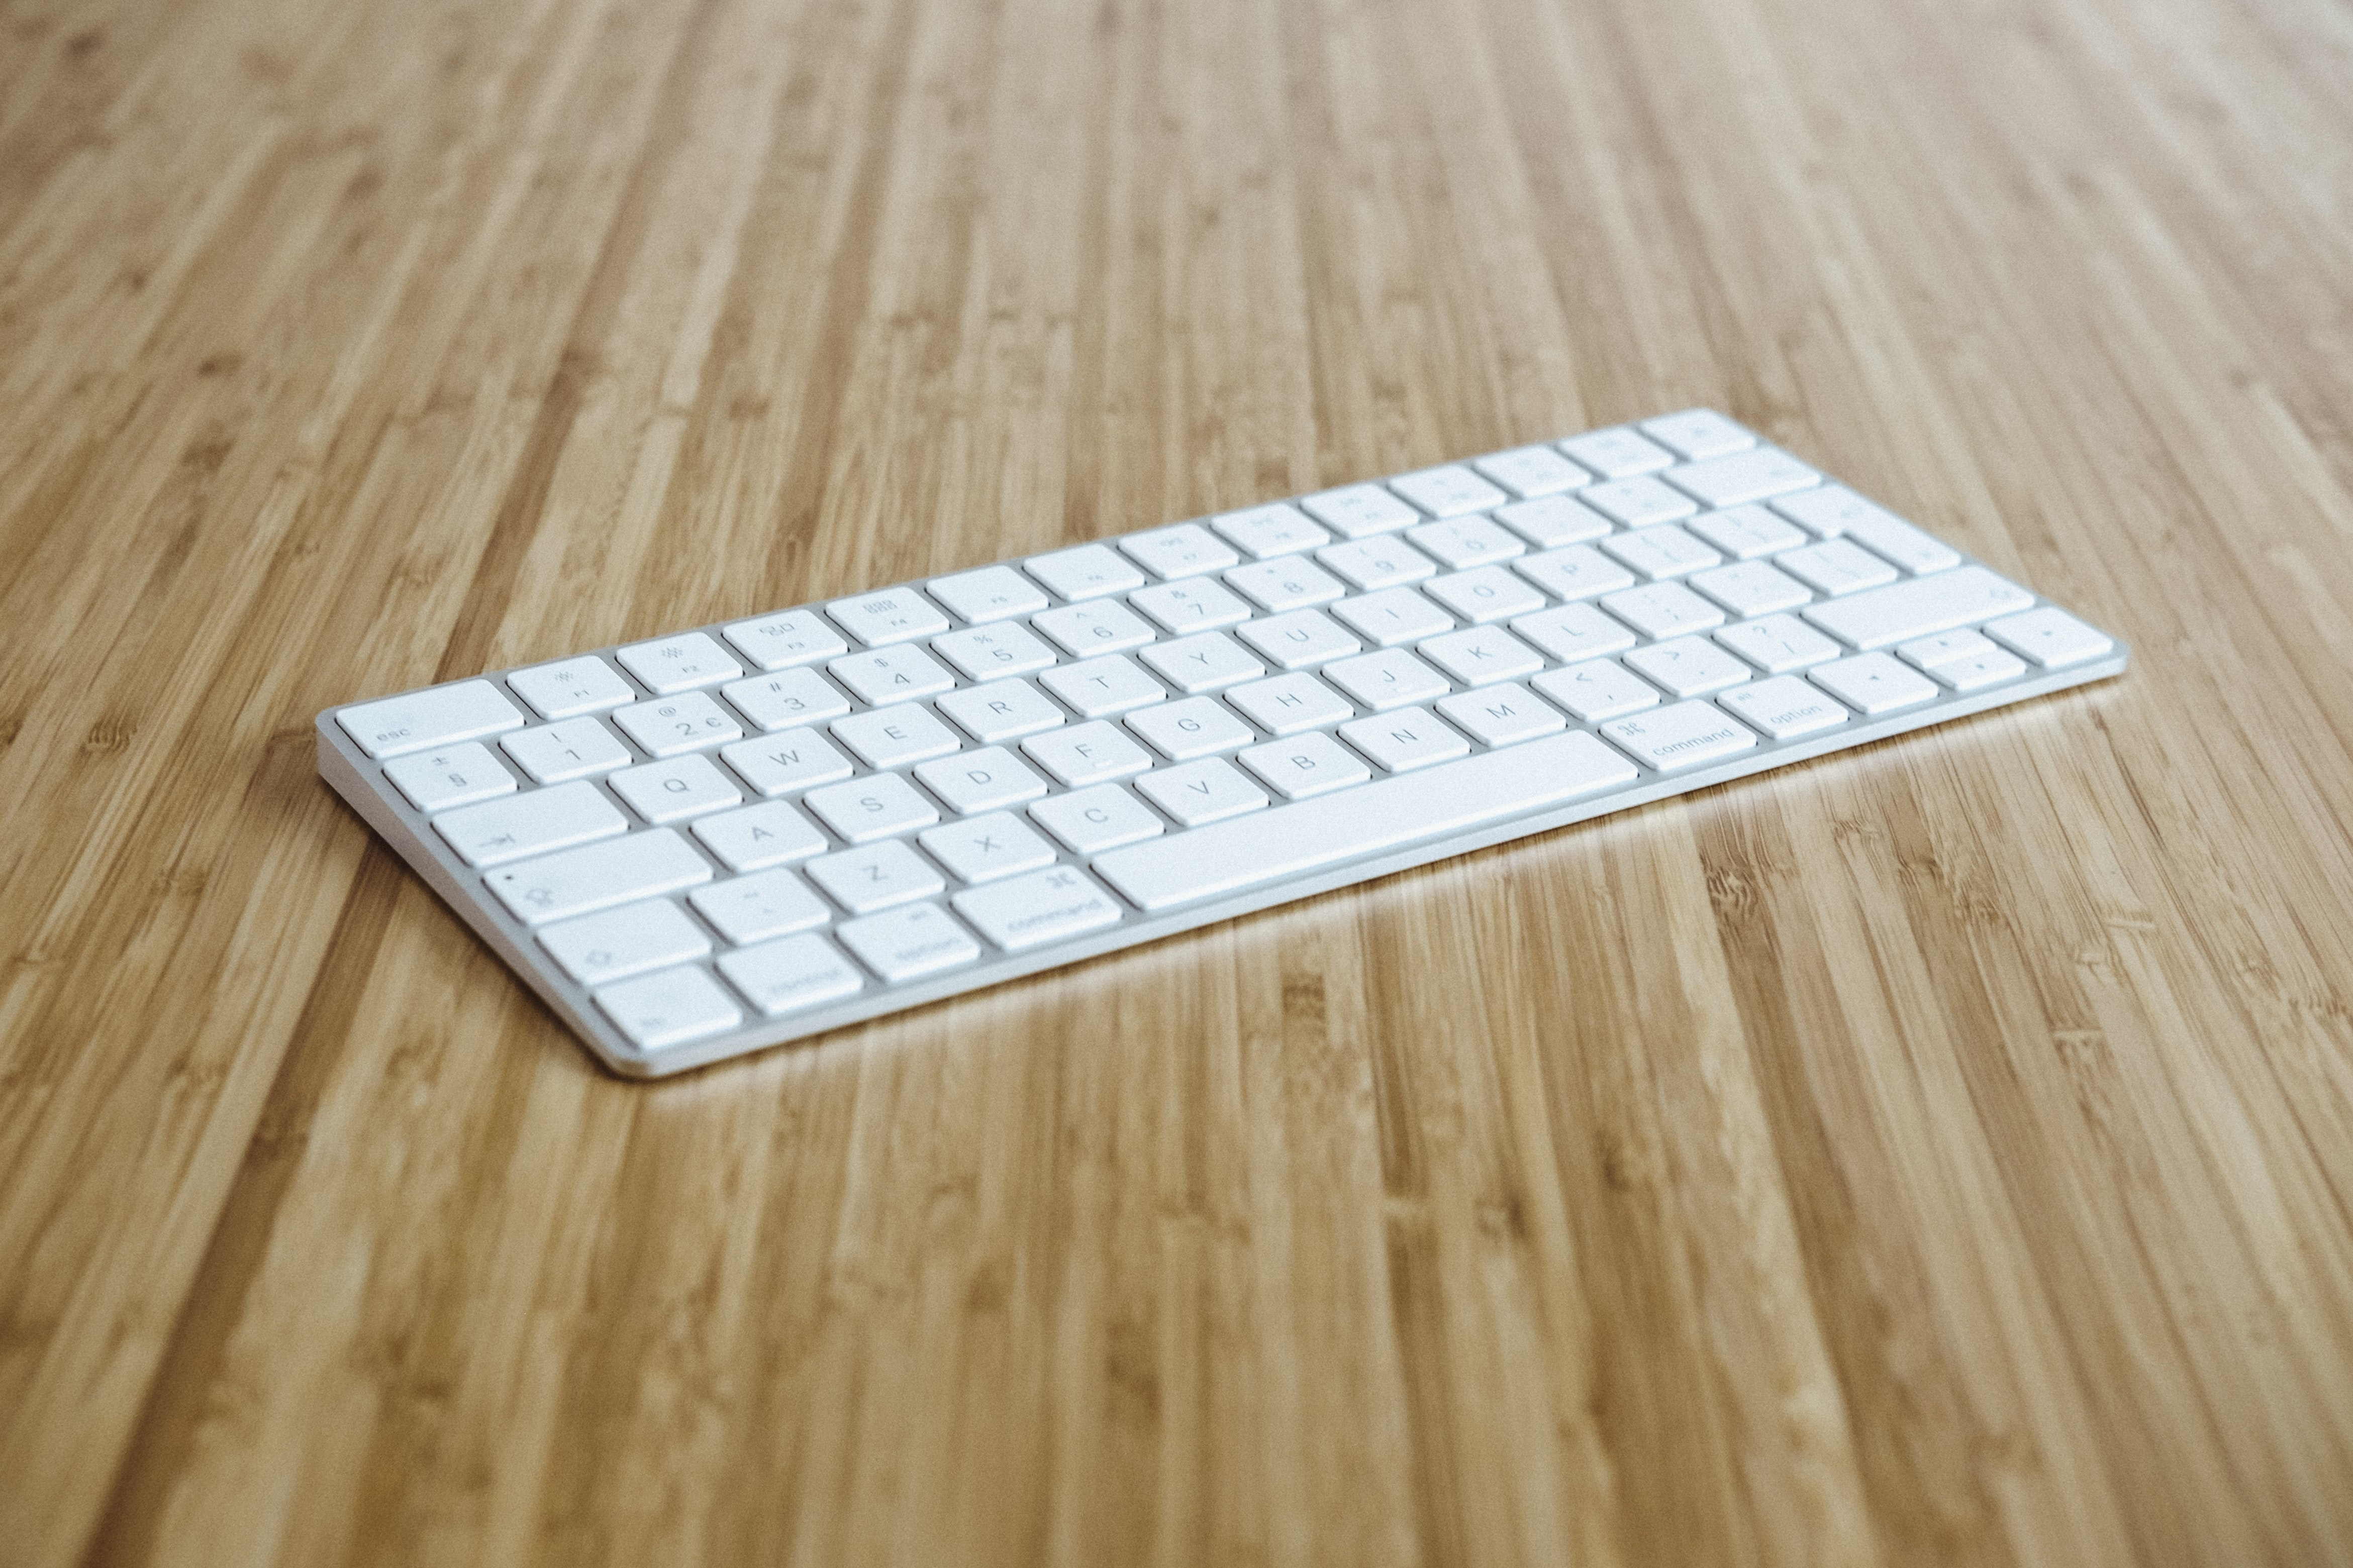 silver and white keyboard on brown wooden surface